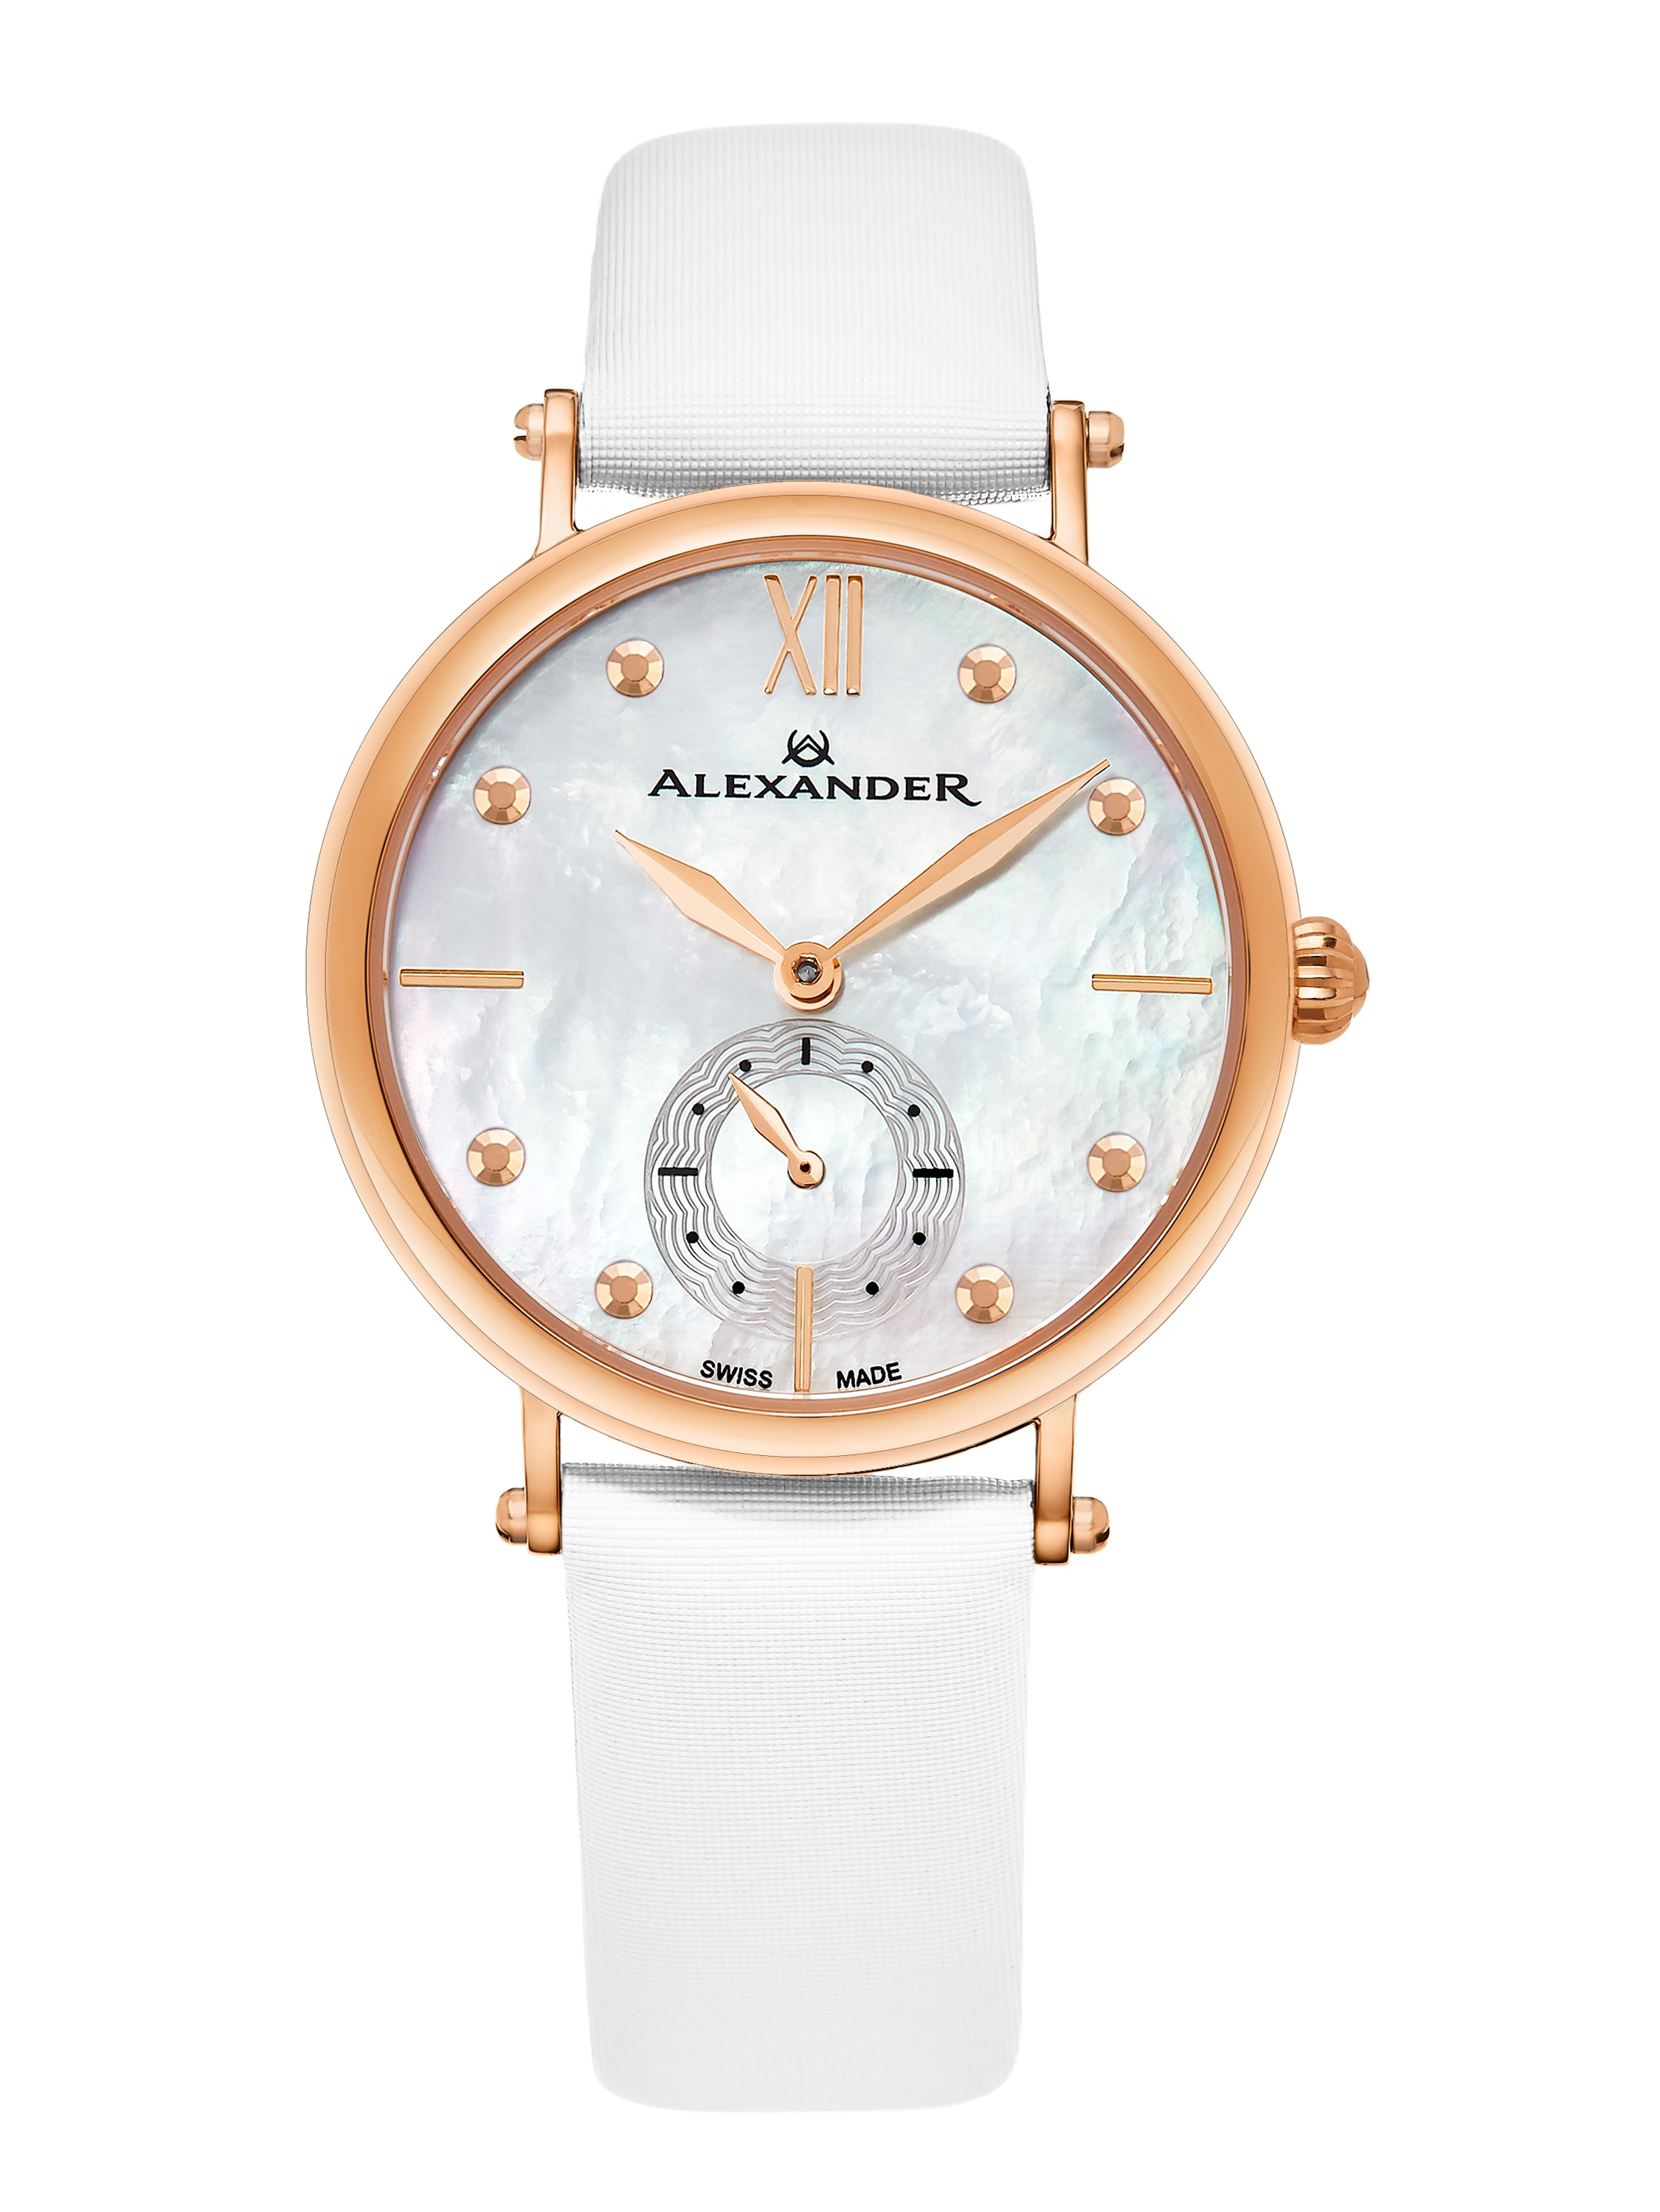 Alexander Monarch Roxana White Mother of Pearl Large Face Stainless Steel Plated Rose Gold Watch For Women - Swiss Quartz White Satin Leather Band Elegant Ladies Dress Watch A201-03